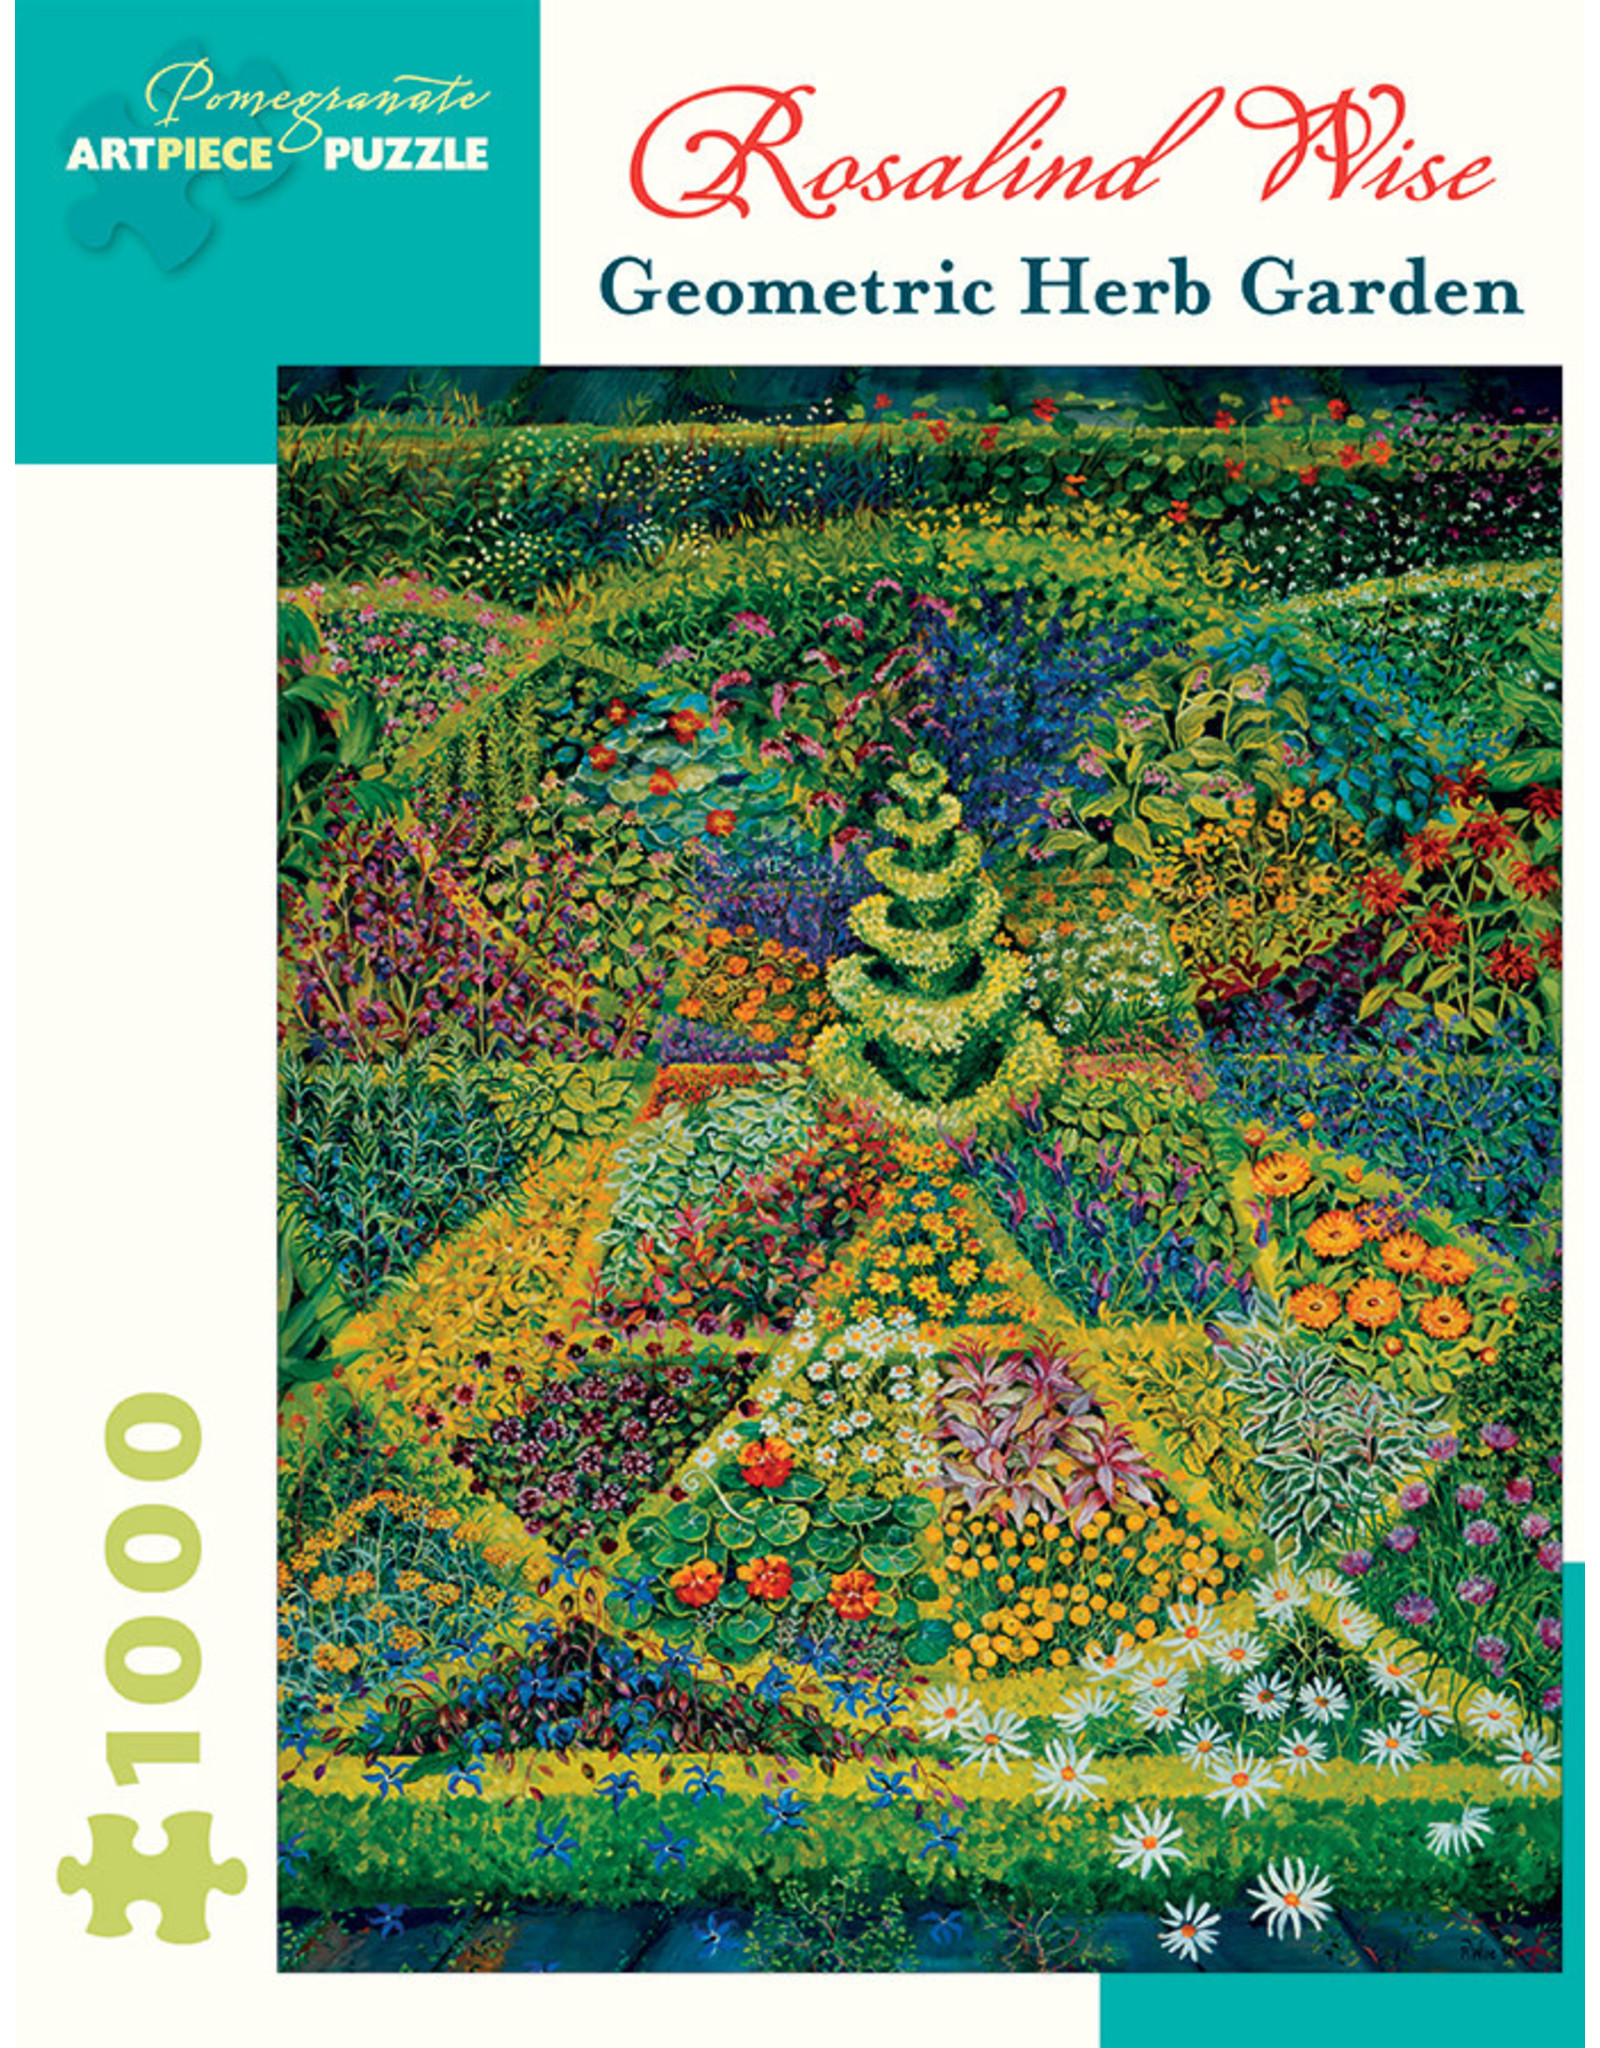 Pomegranate Puzzles Geometric Herb Garden 1000pc